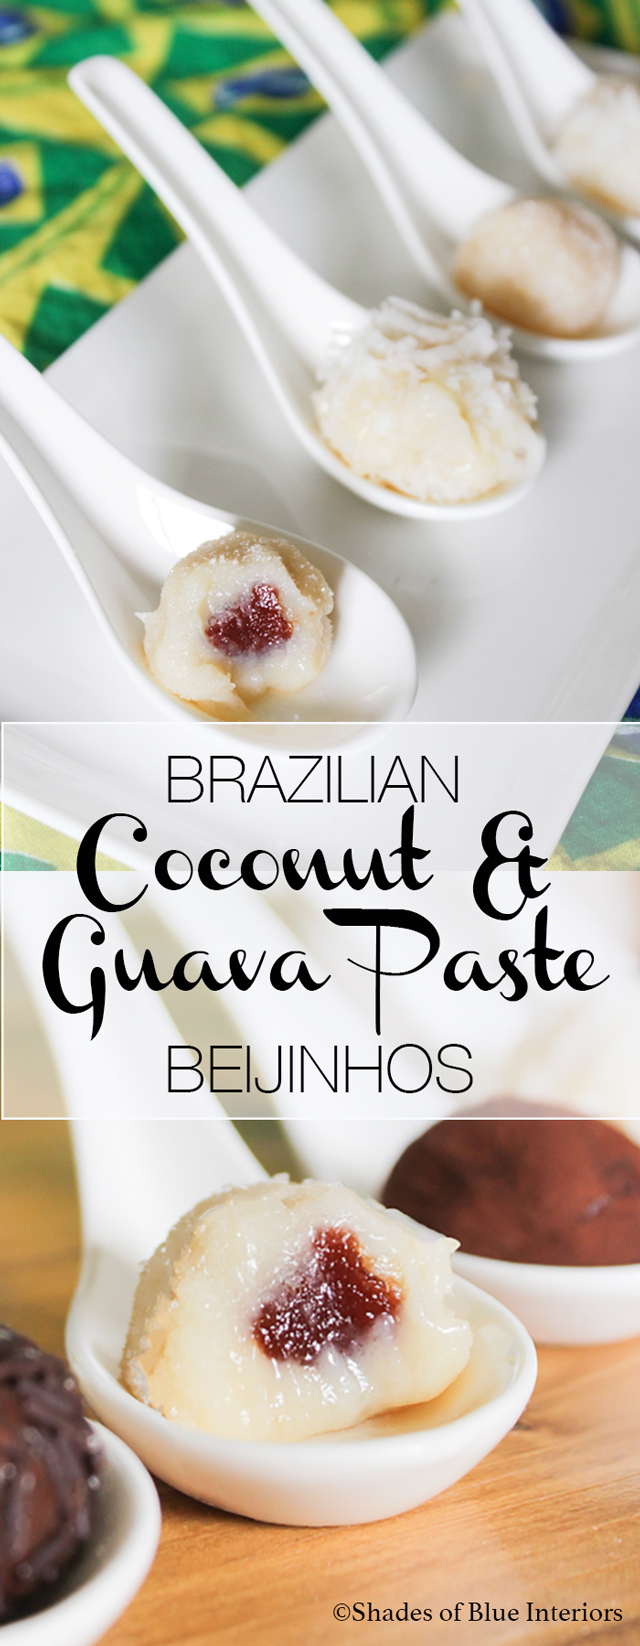 A brazilian recipe brigadeiro shades of blue interiors brazilian coconut and guava paste beijinhos forumfinder Images